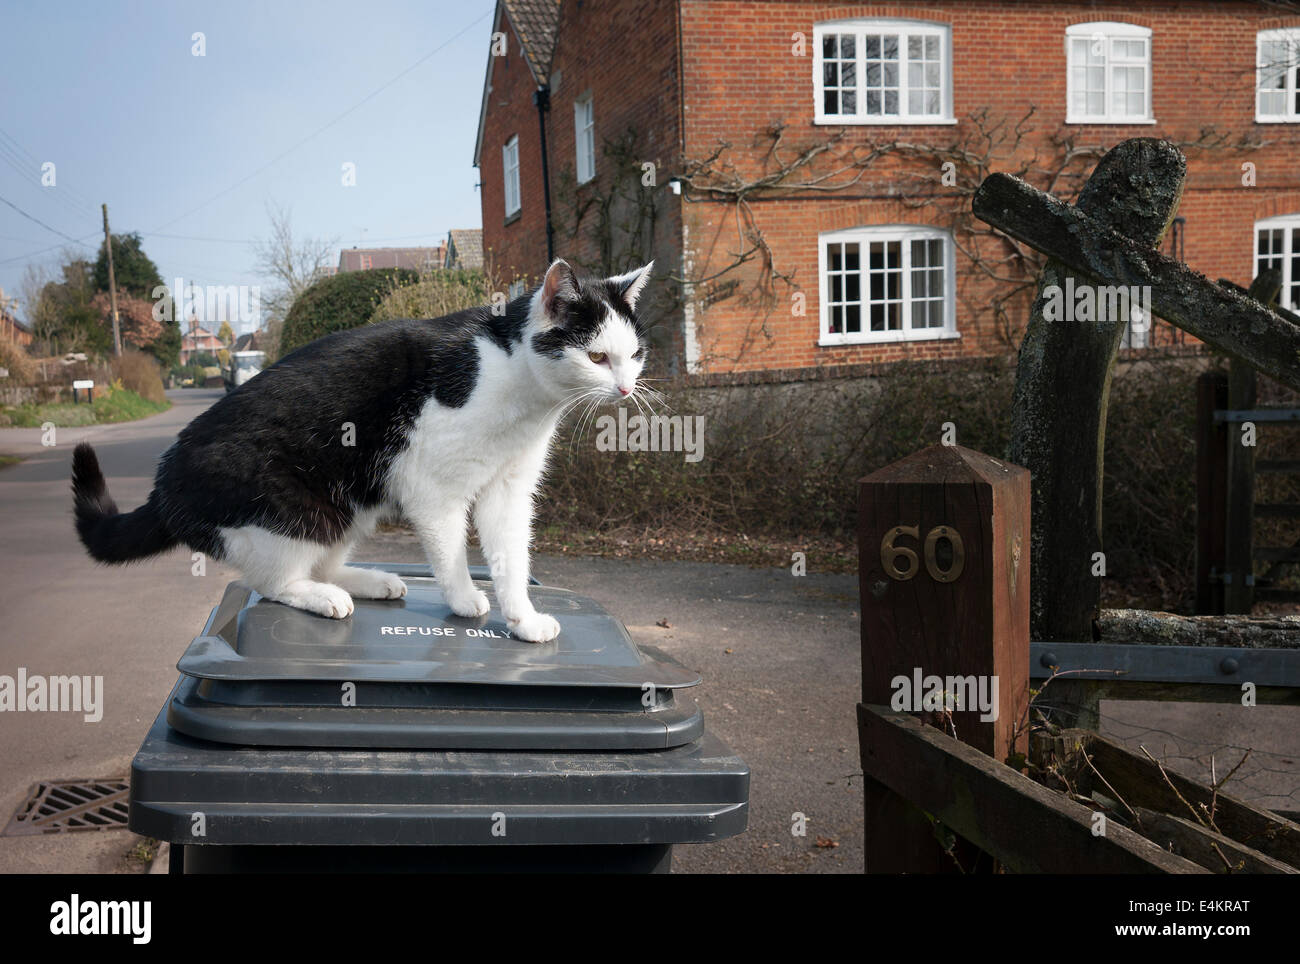 A country cat on a refuse bin in active hunting mode - Stock Image